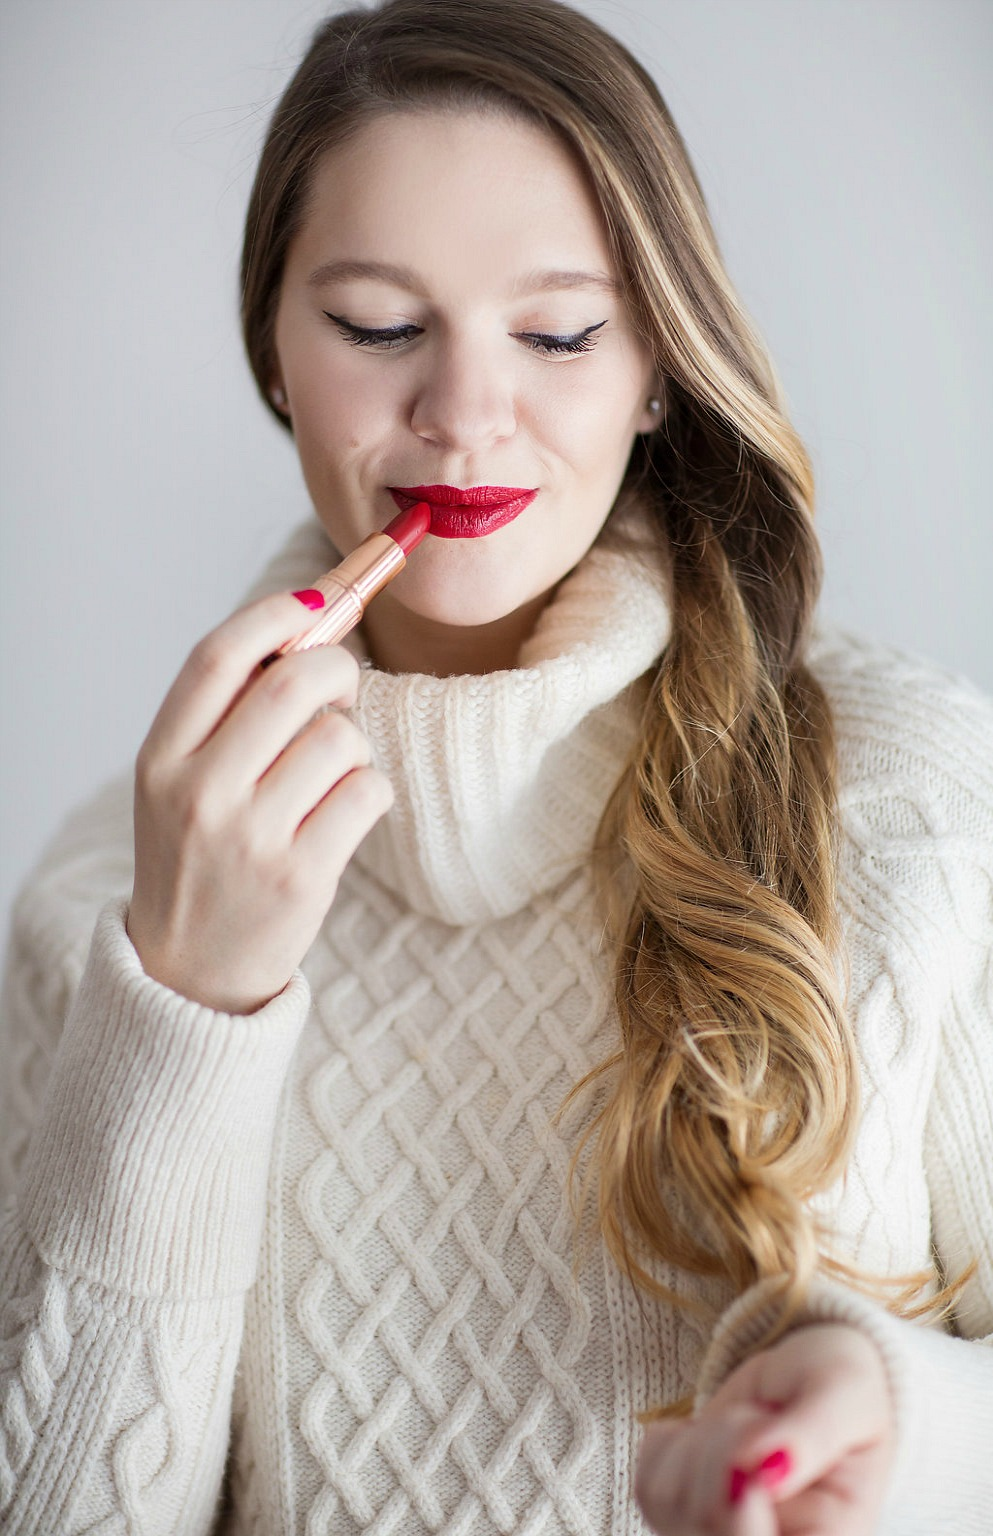 know-cosmetics-lips-are-sealed-holiday-red-lipstick-rose-city-style-guide-canadian-beauty-blog